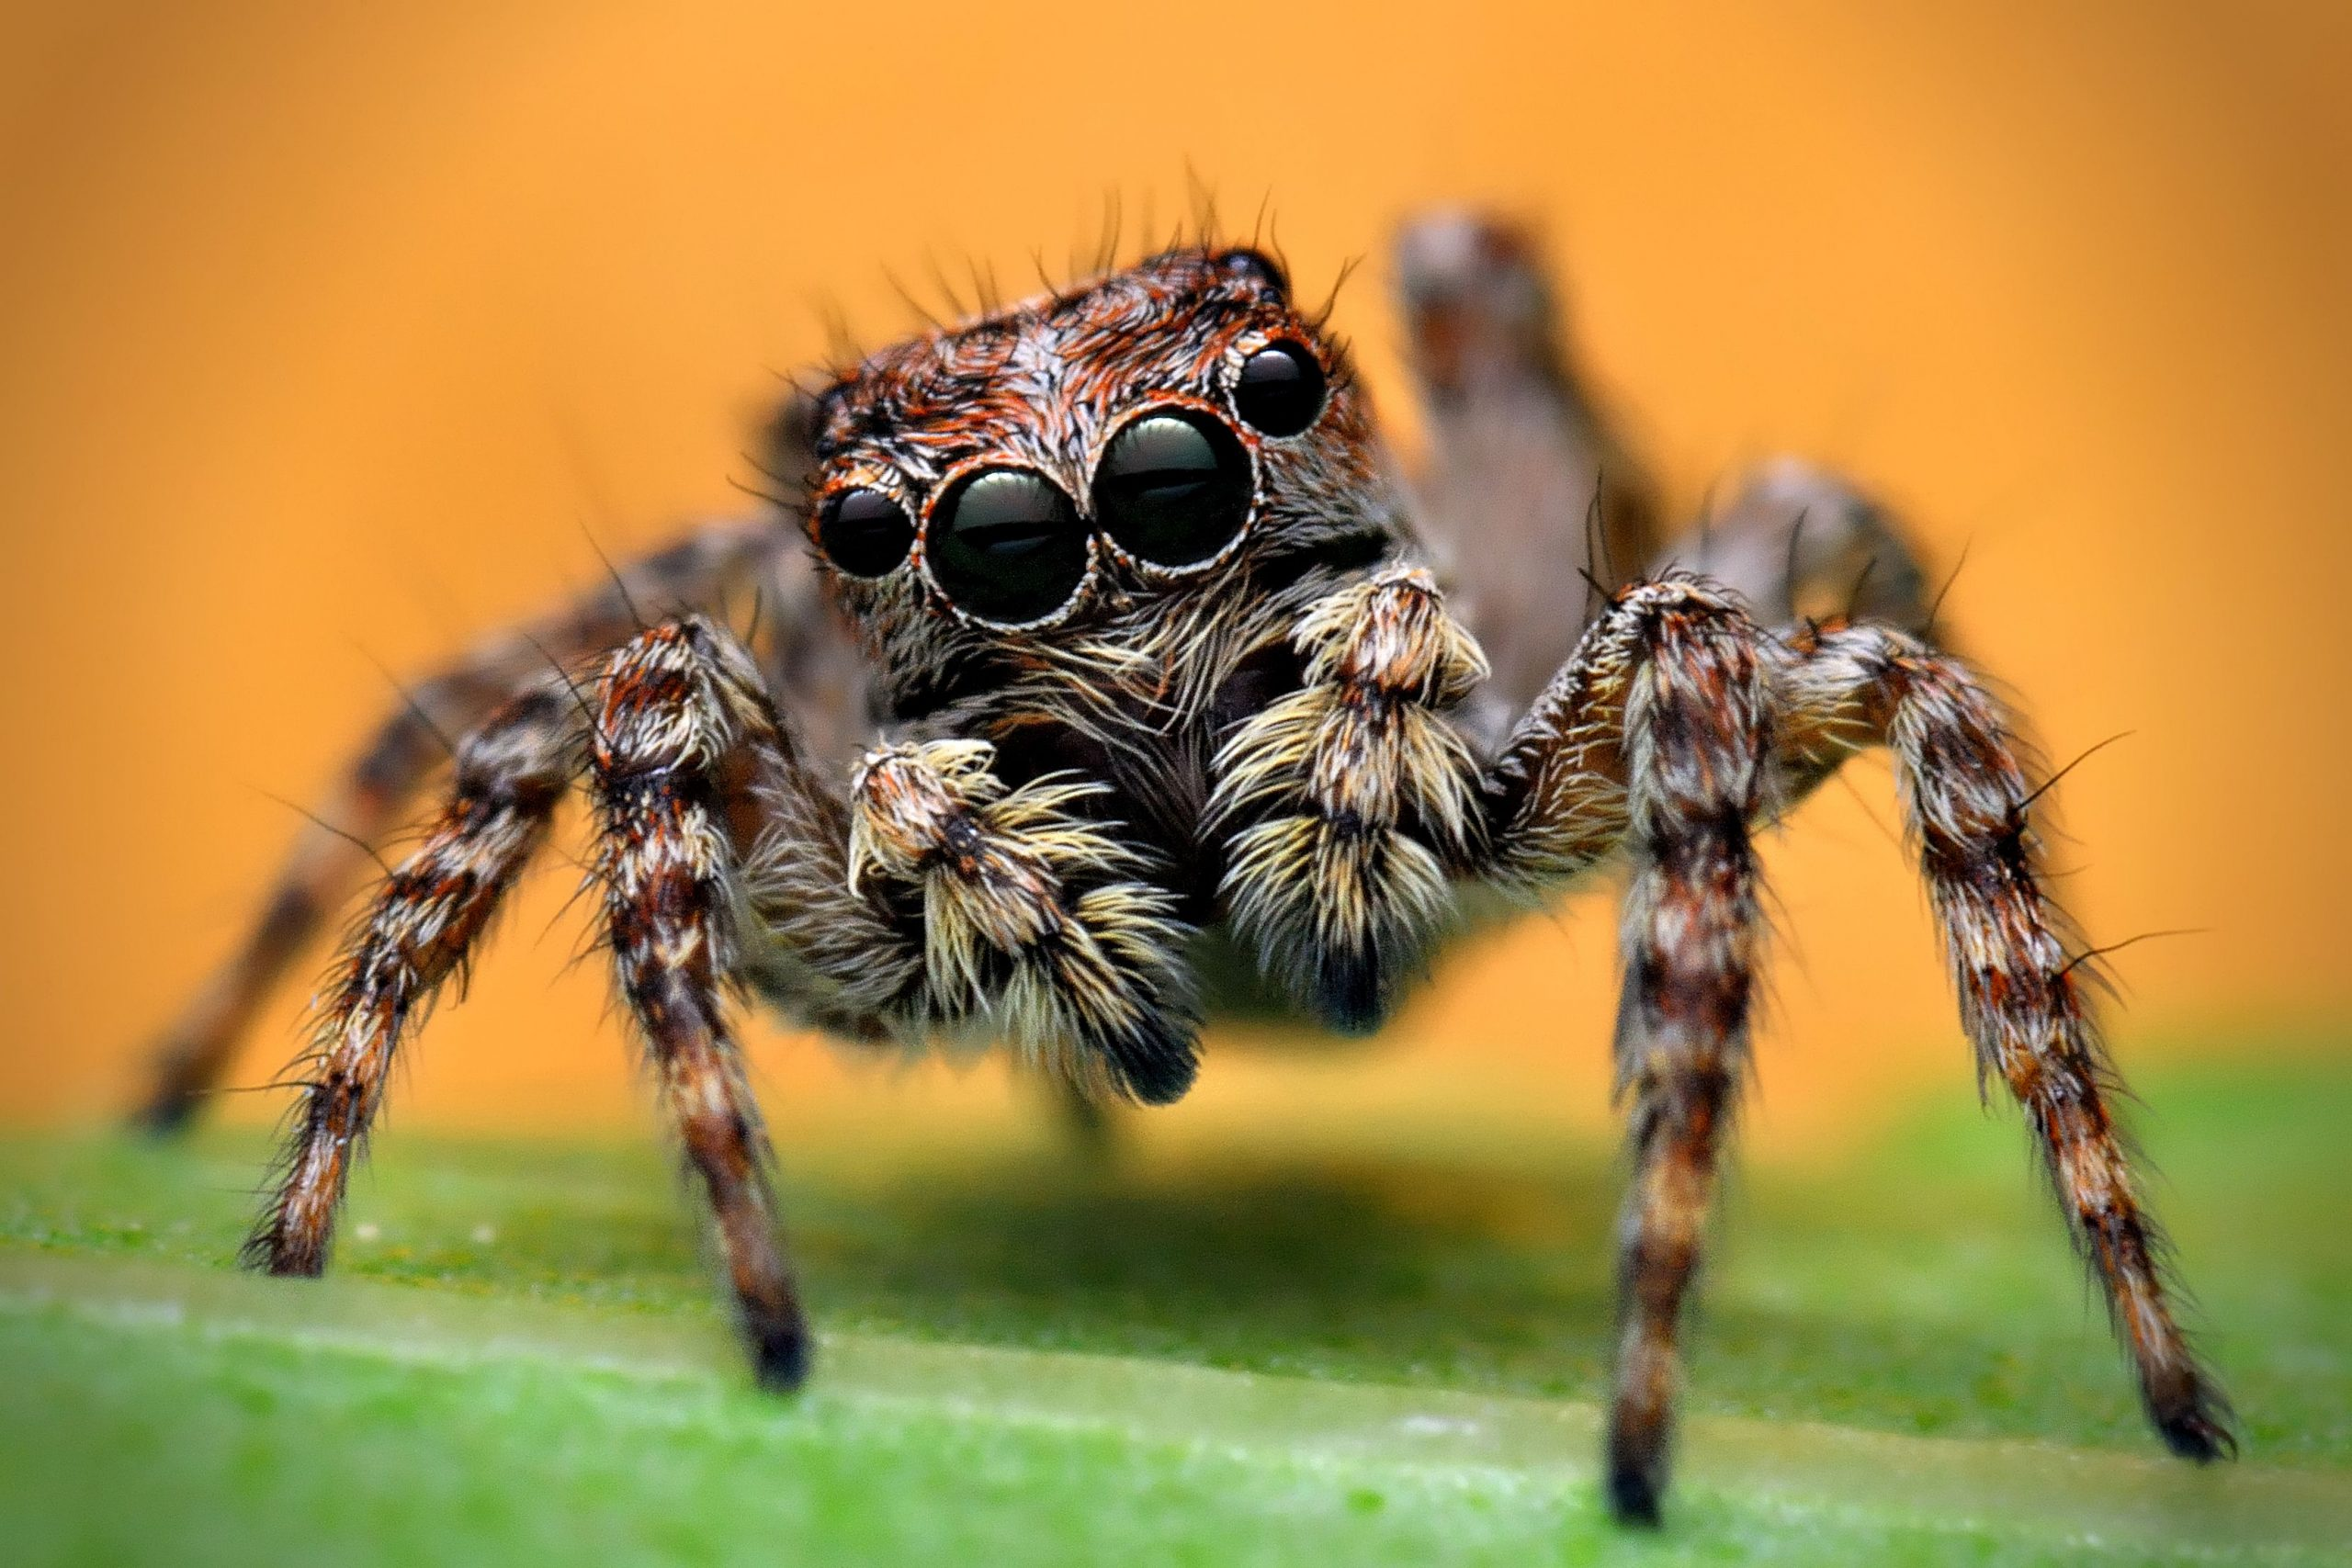 do jumping spiders bite - Image By ThoughtCo